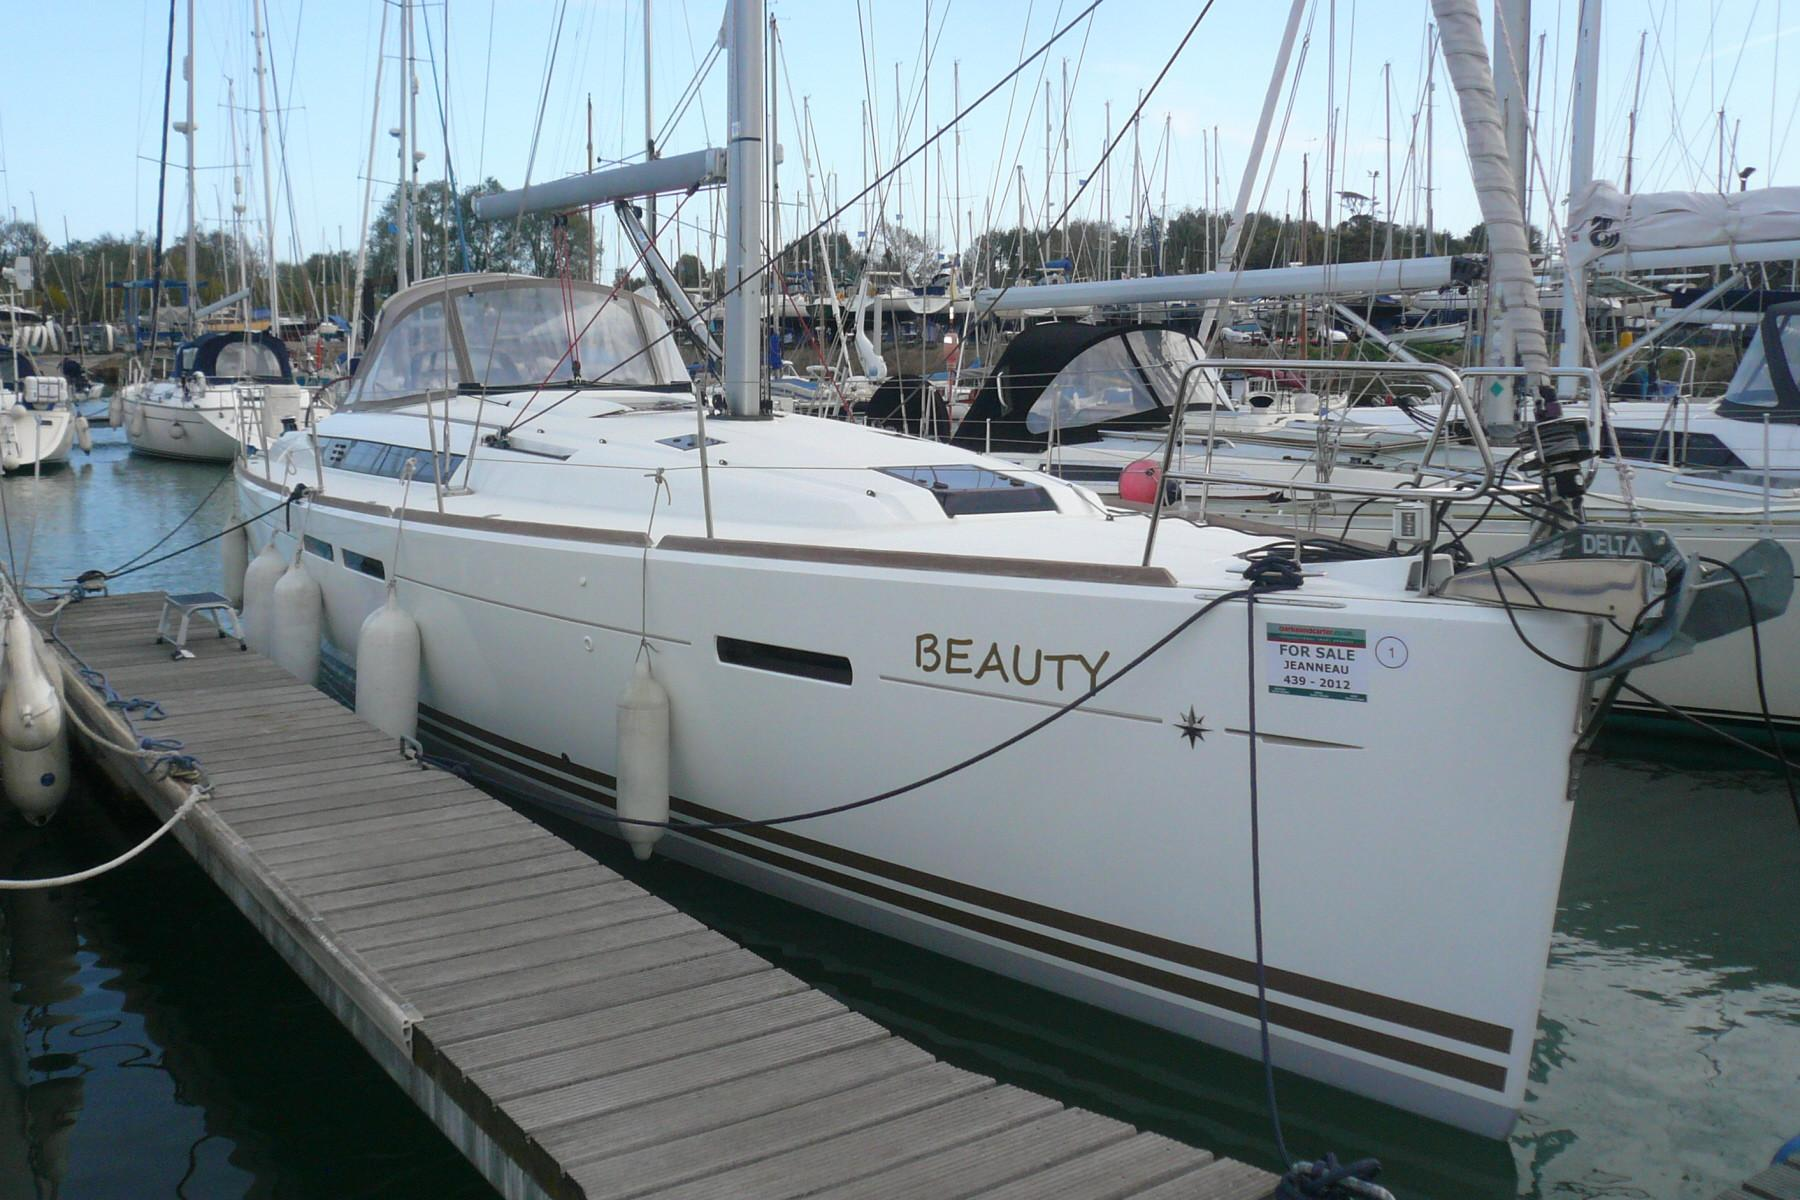 6500957_20171029033623220_1_XLARGE&w=1800&h=1200&t=1509277033000 2012 jeanneau sun odyssey 439 sail boat for sale www yachtworld com  at edmiracle.co